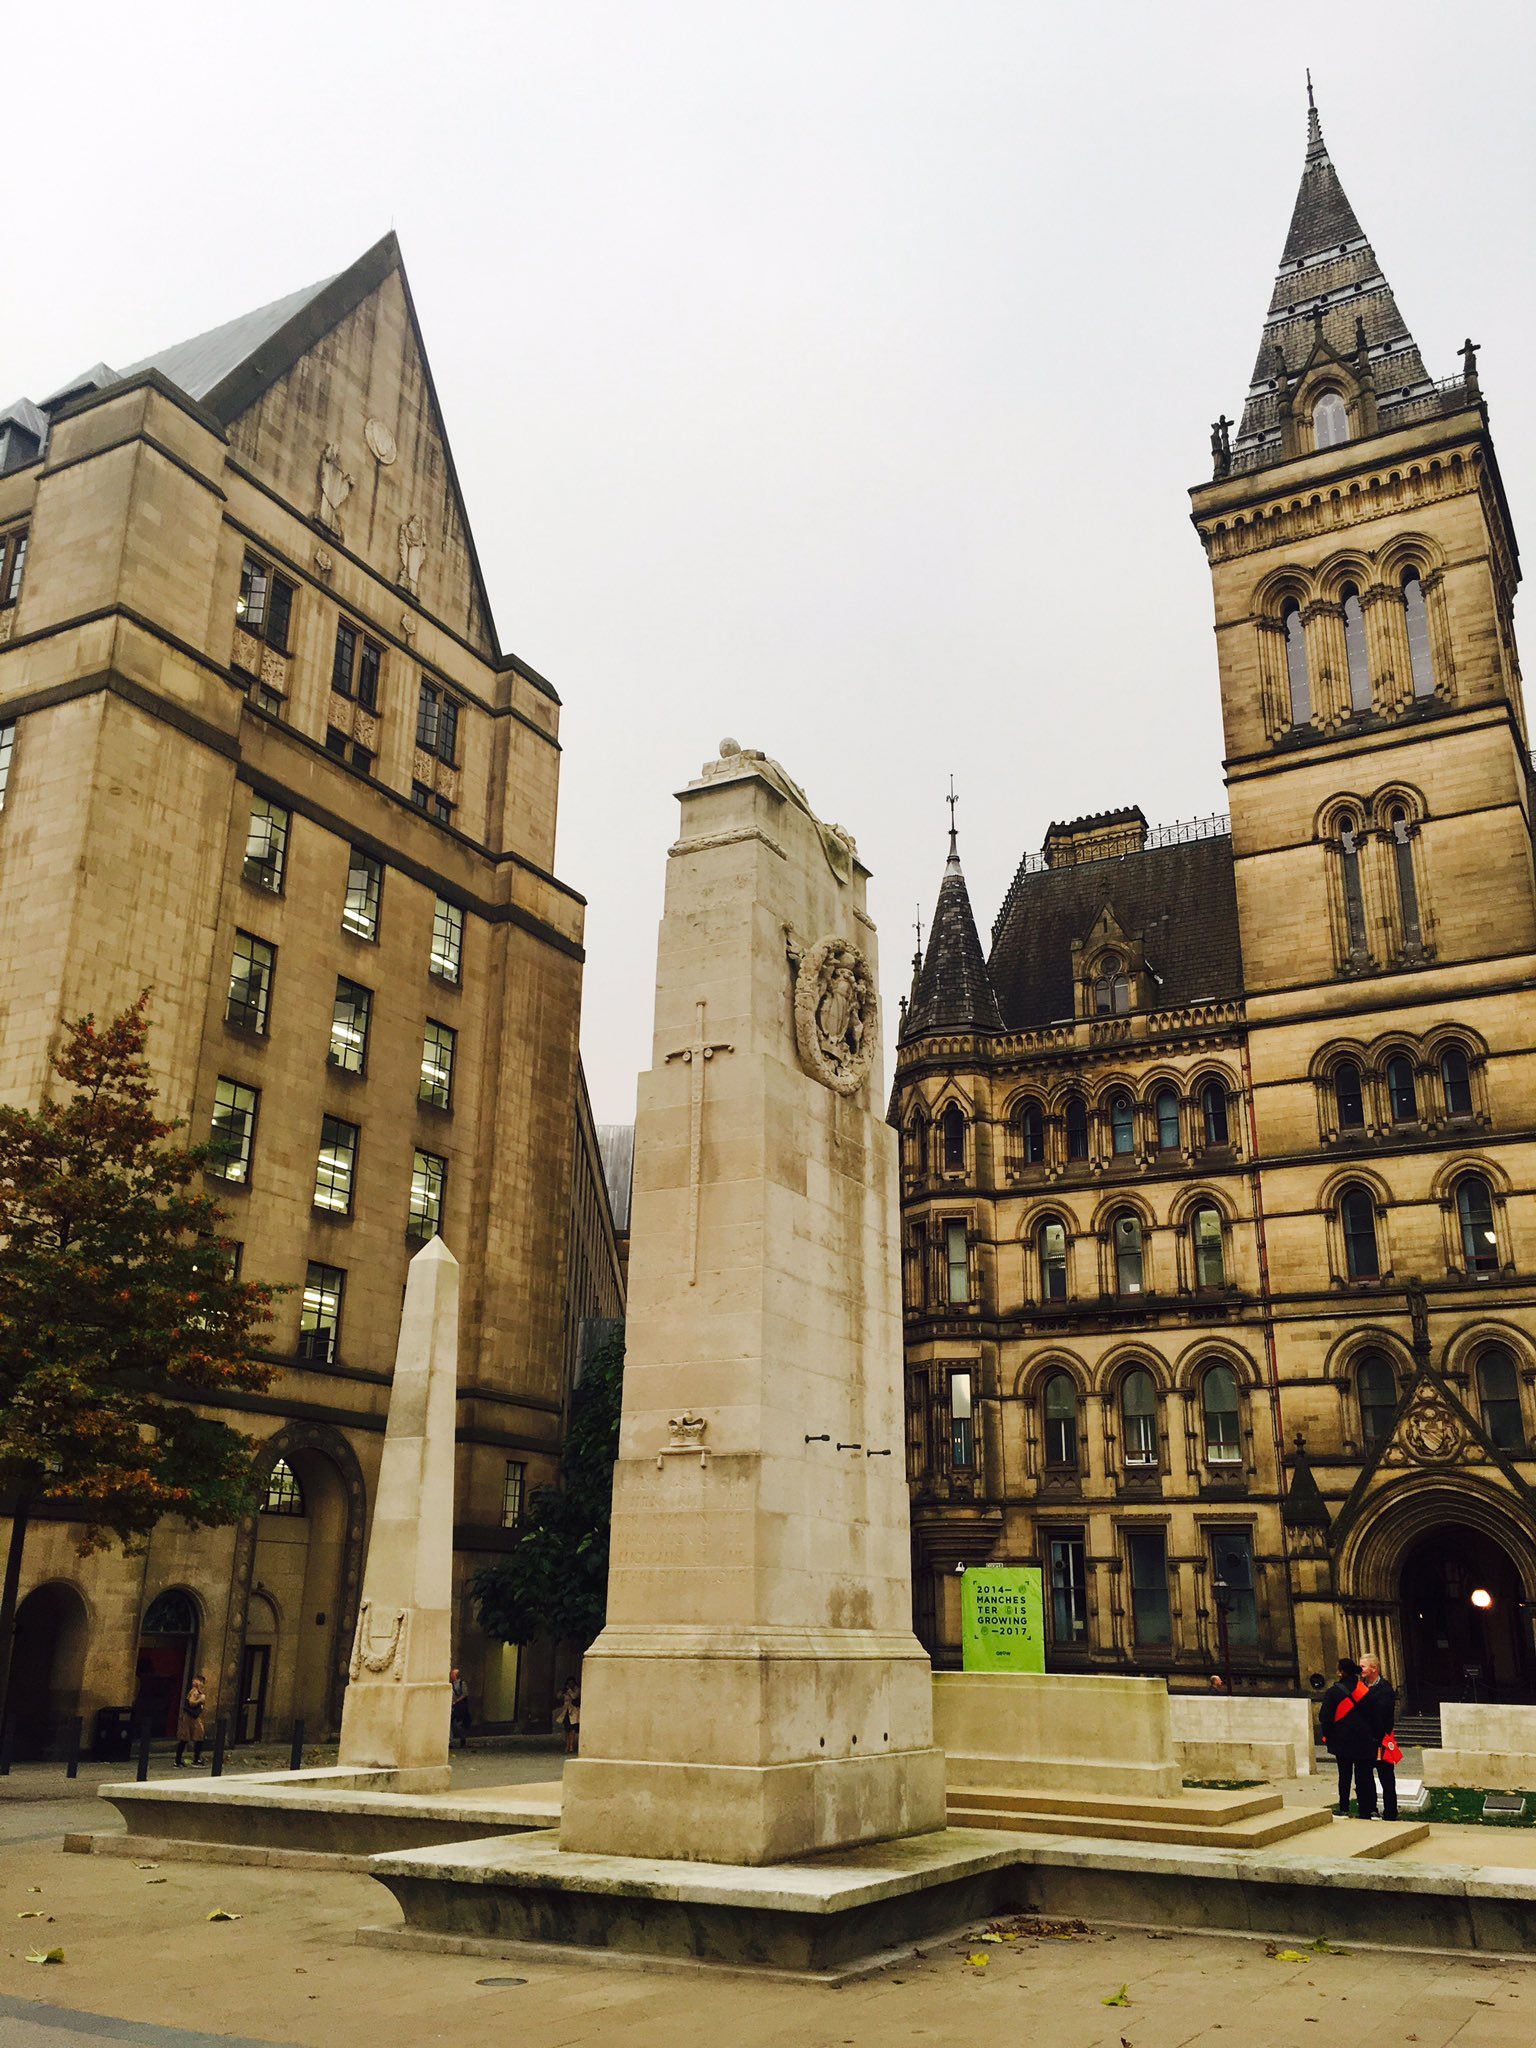 RT @theAliceRoberts: My goodness, Manchester has some stunning buildings! https://t.co/gJ90pagmxT